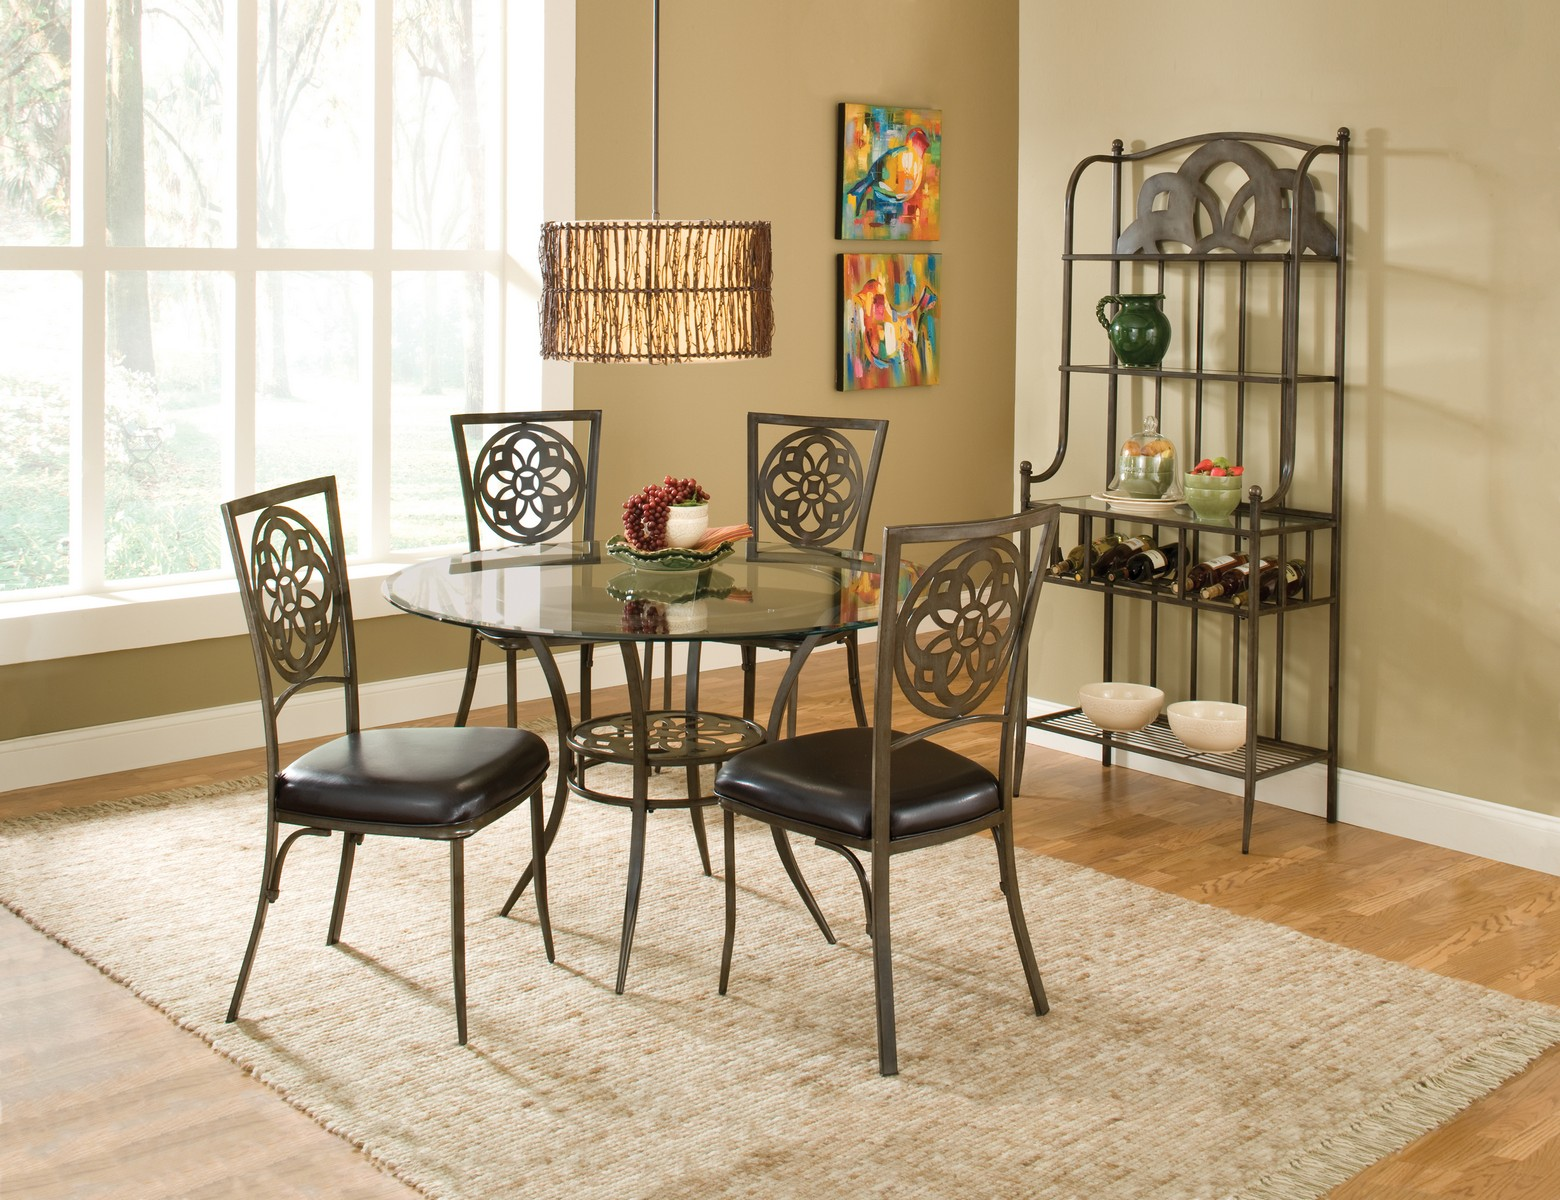 Hillsdale Marsala 5 PC Dining Set - Gray with Brown Rub - Black PU